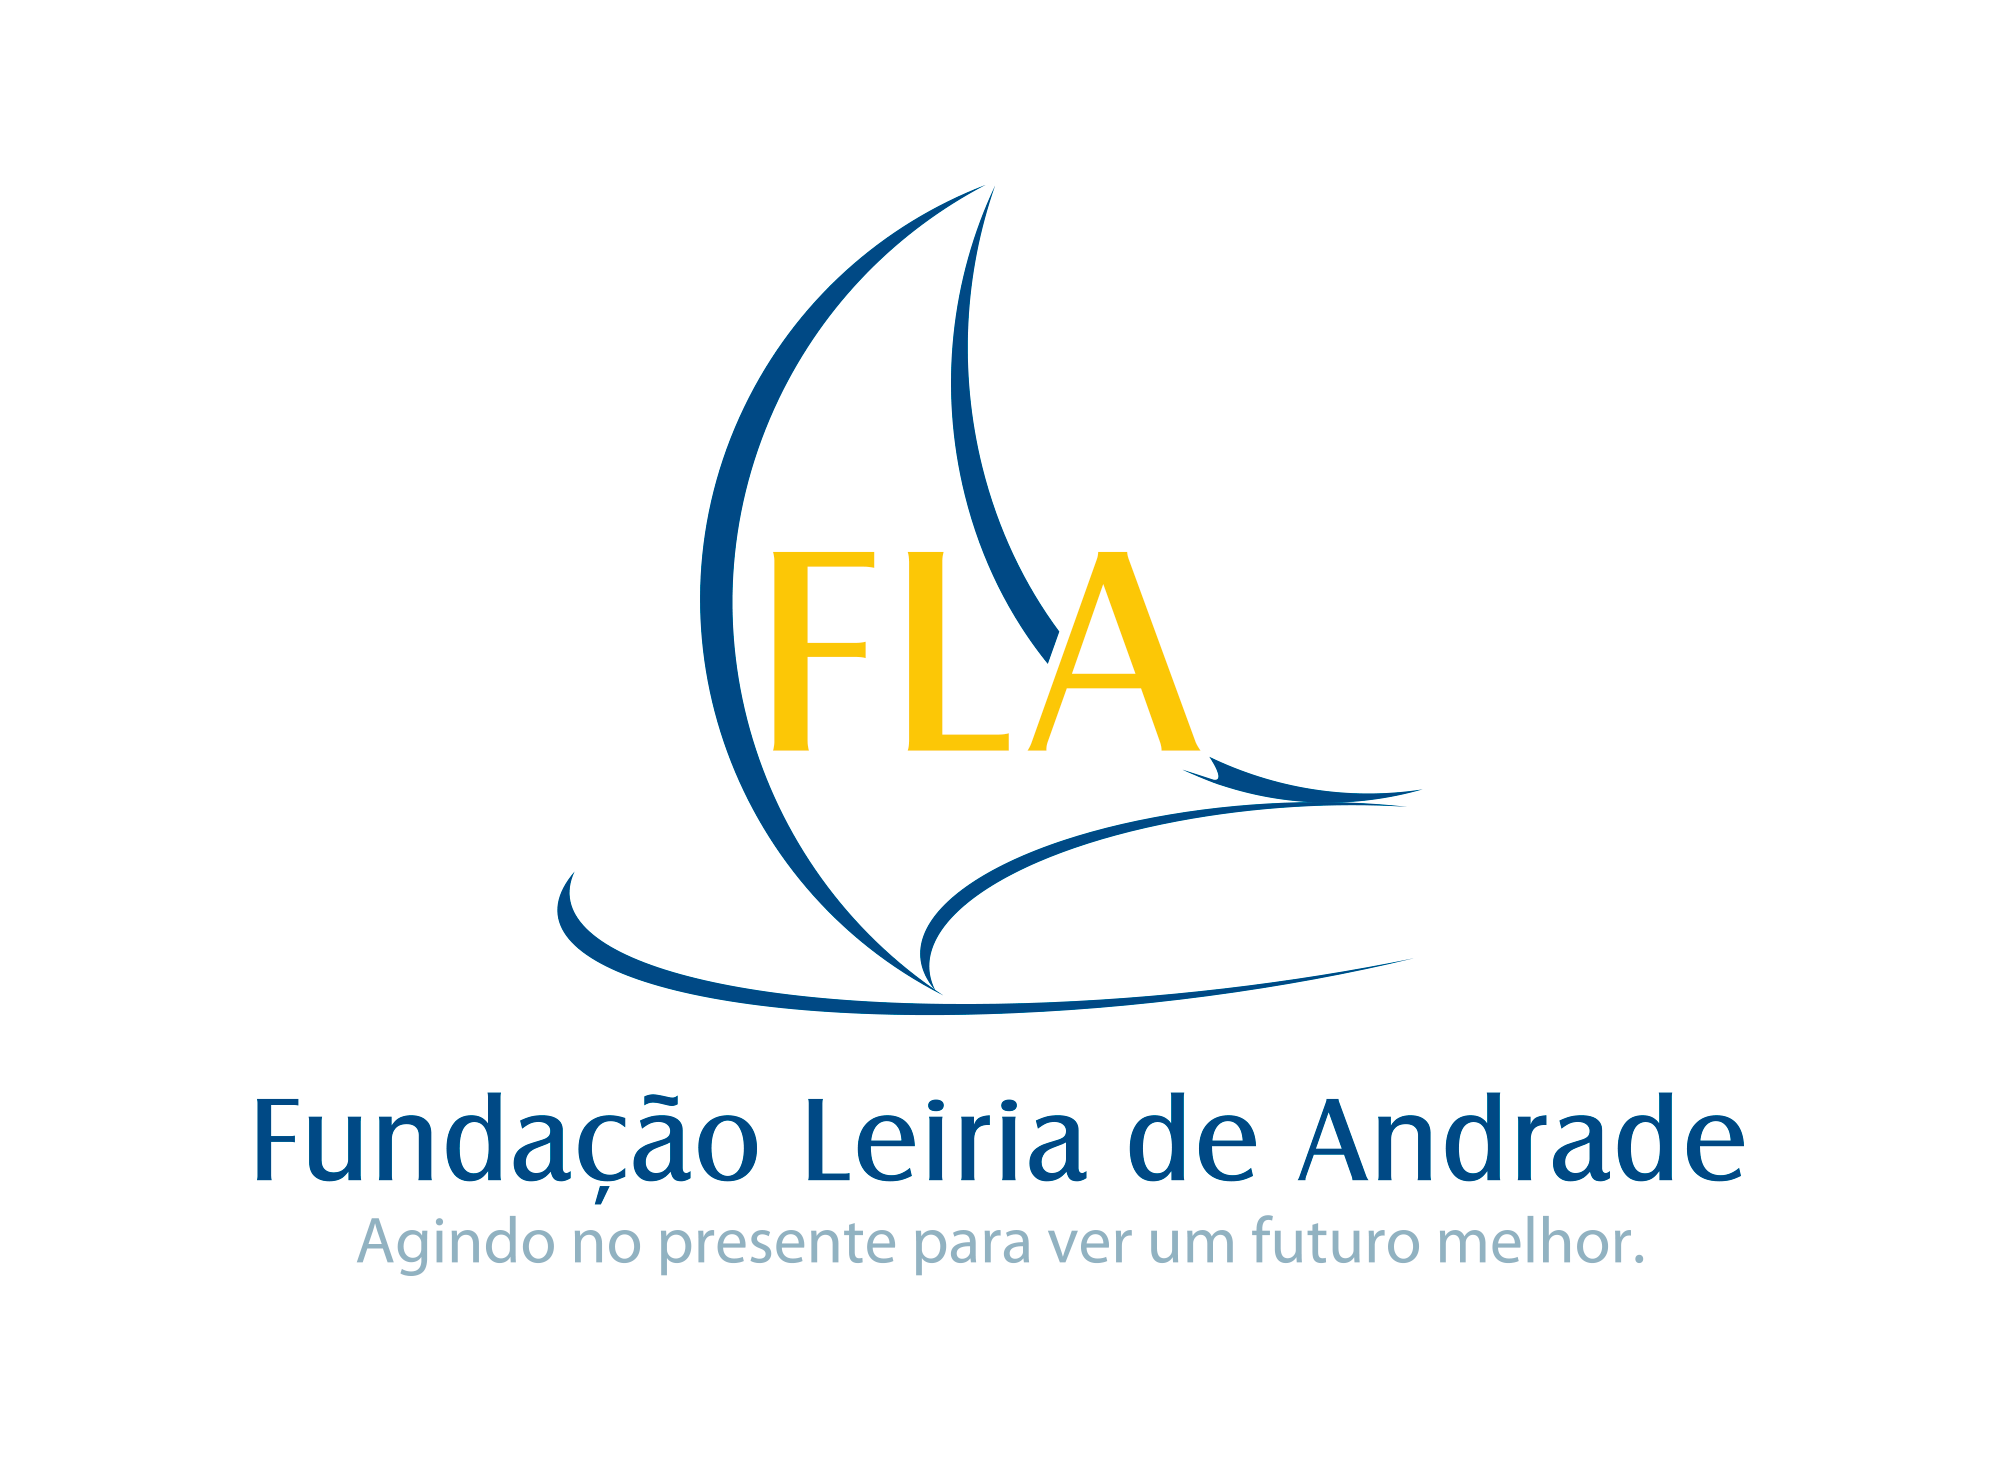 fundacao-leiria-andrade-clientes-agencia-diretriz-digital-marketing-fortaleza